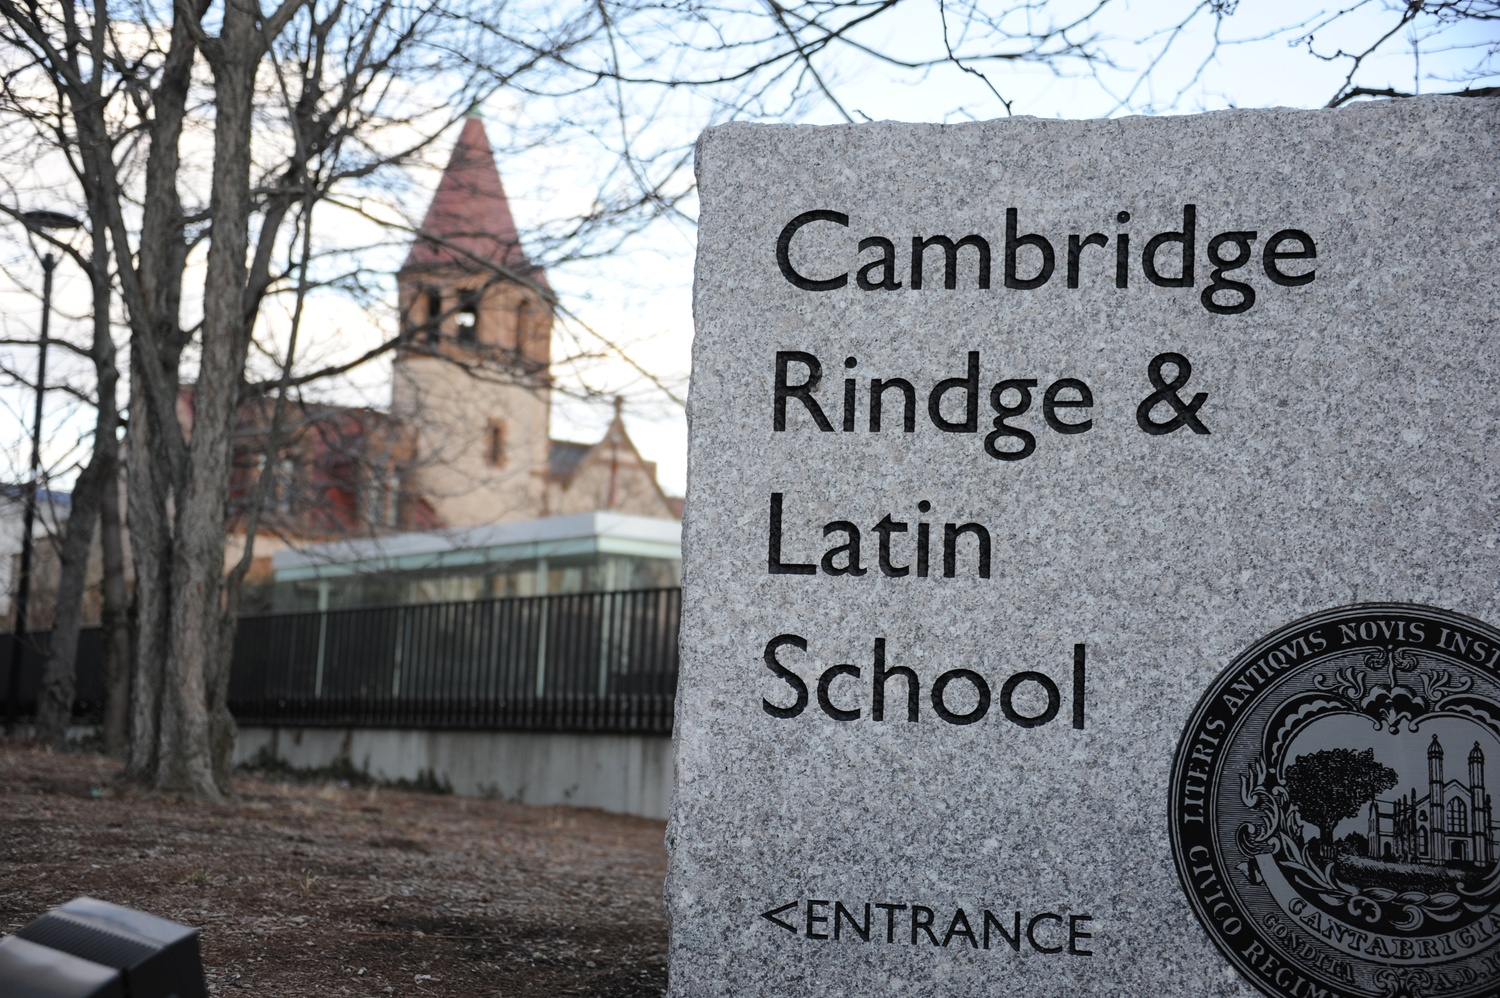 Cambridge Rindge and Latin School